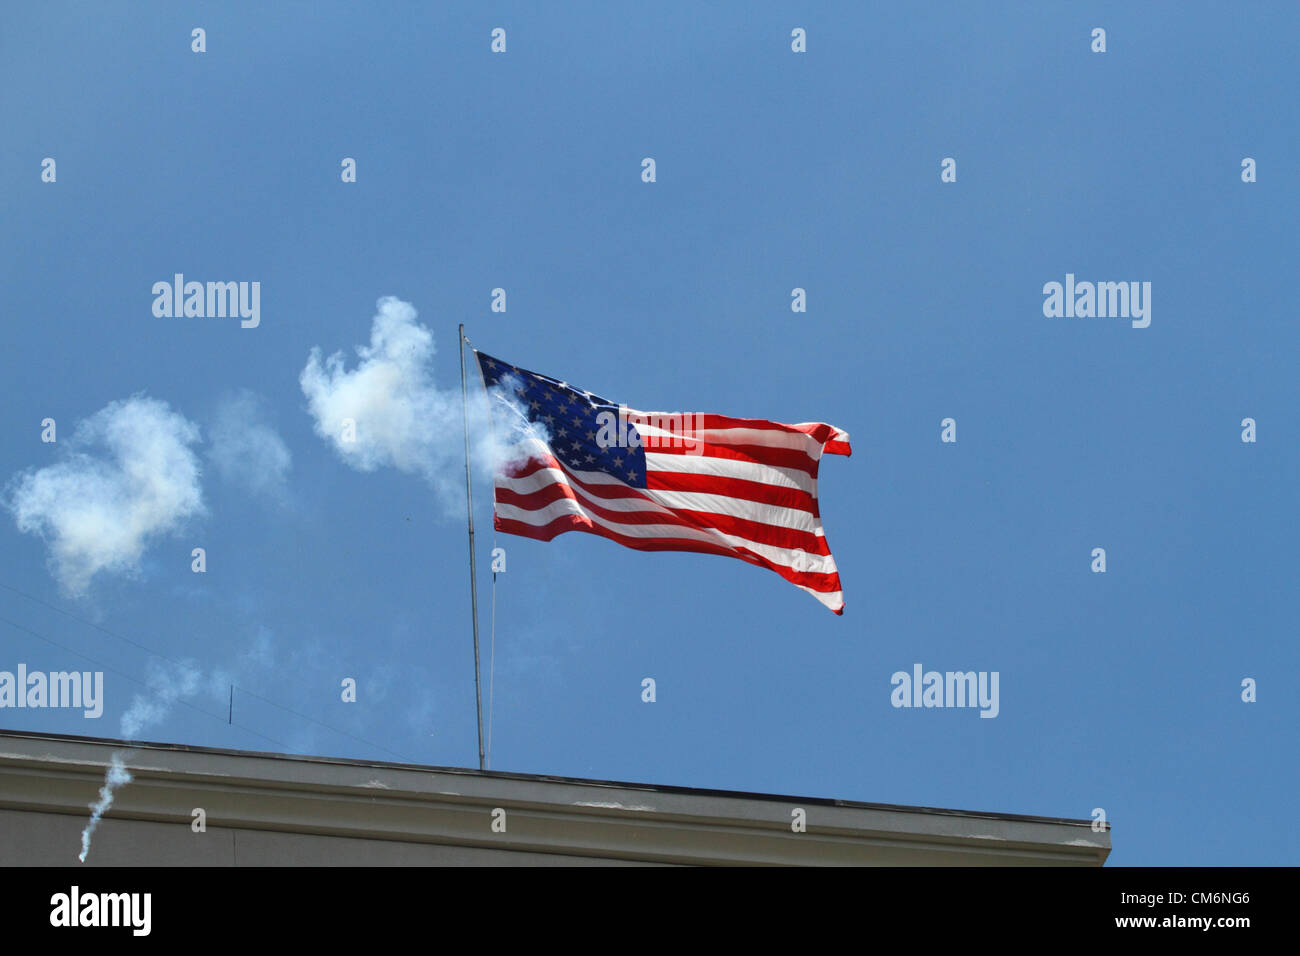 LA PAZ, BOLIVIA, 17th October 2012. Rockets explode near the flag on the US Embassy building in La Paz during a - Stock Image